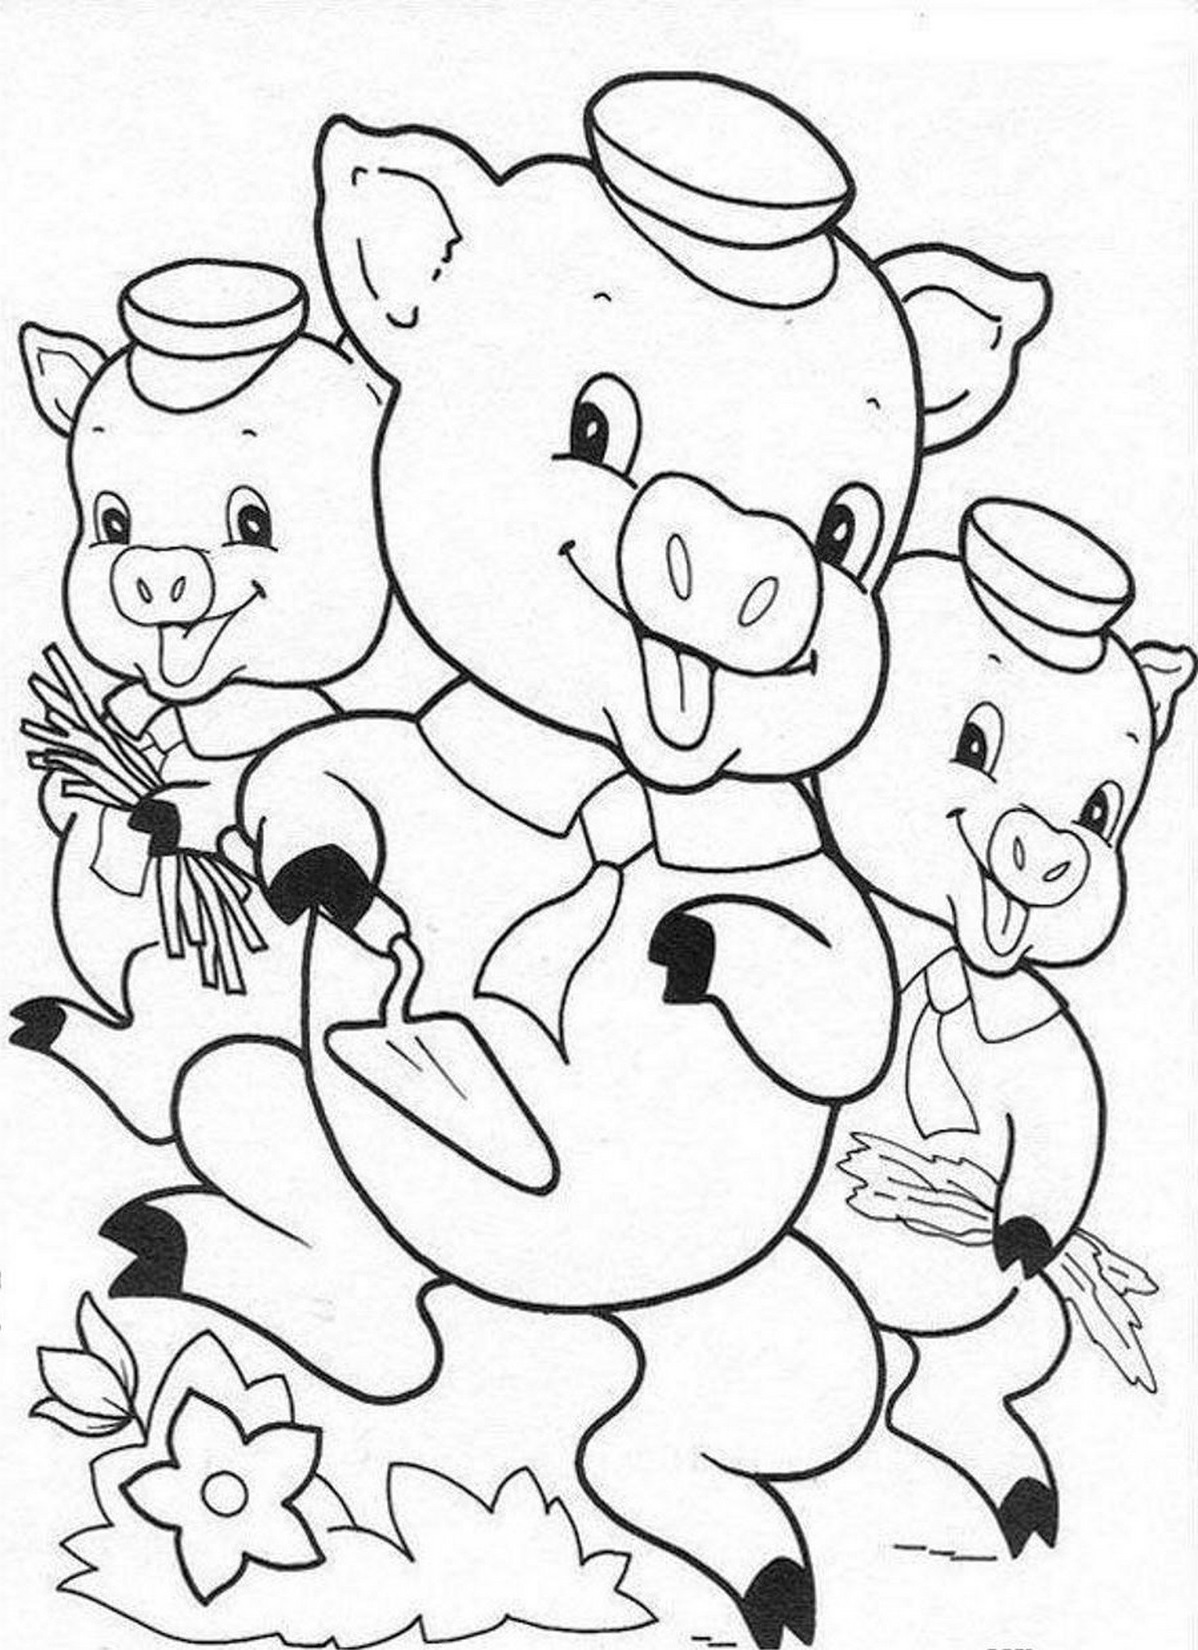 This is an image of Candid 3 Little Pigs Coloring Pages